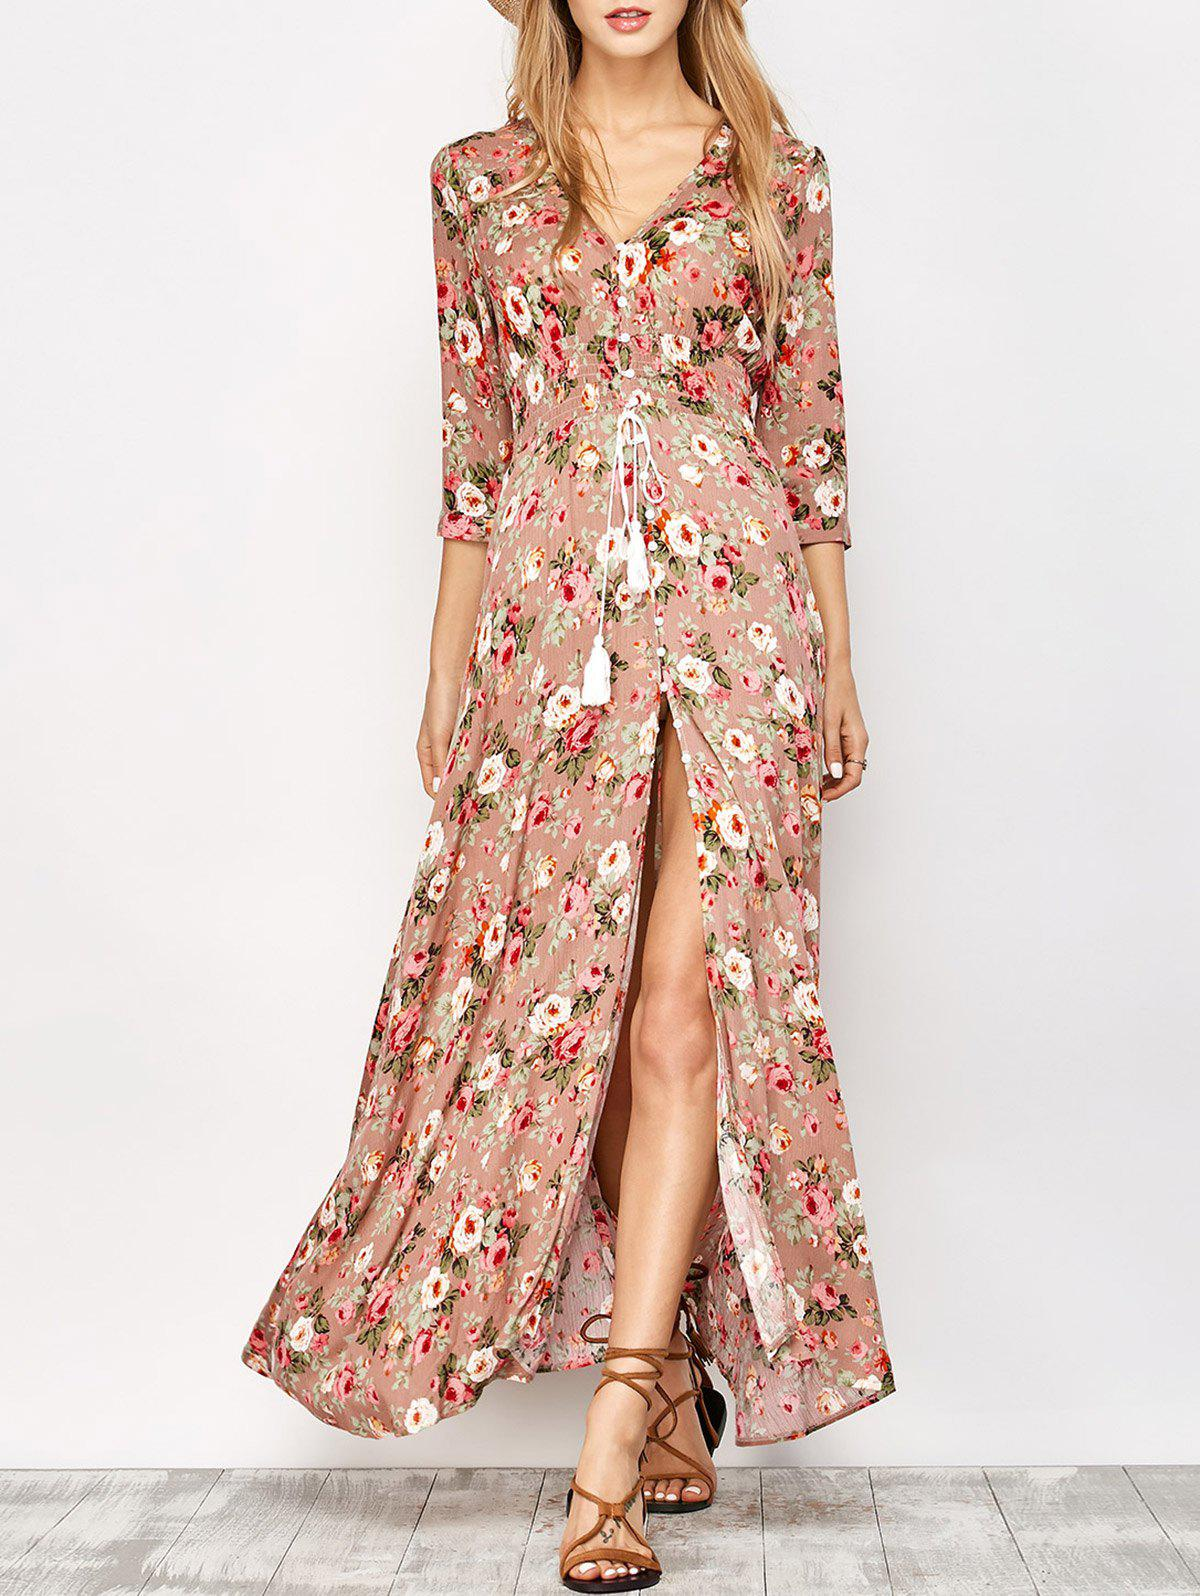 Floral Thigh High Split Maxi Dress - FLORAL M